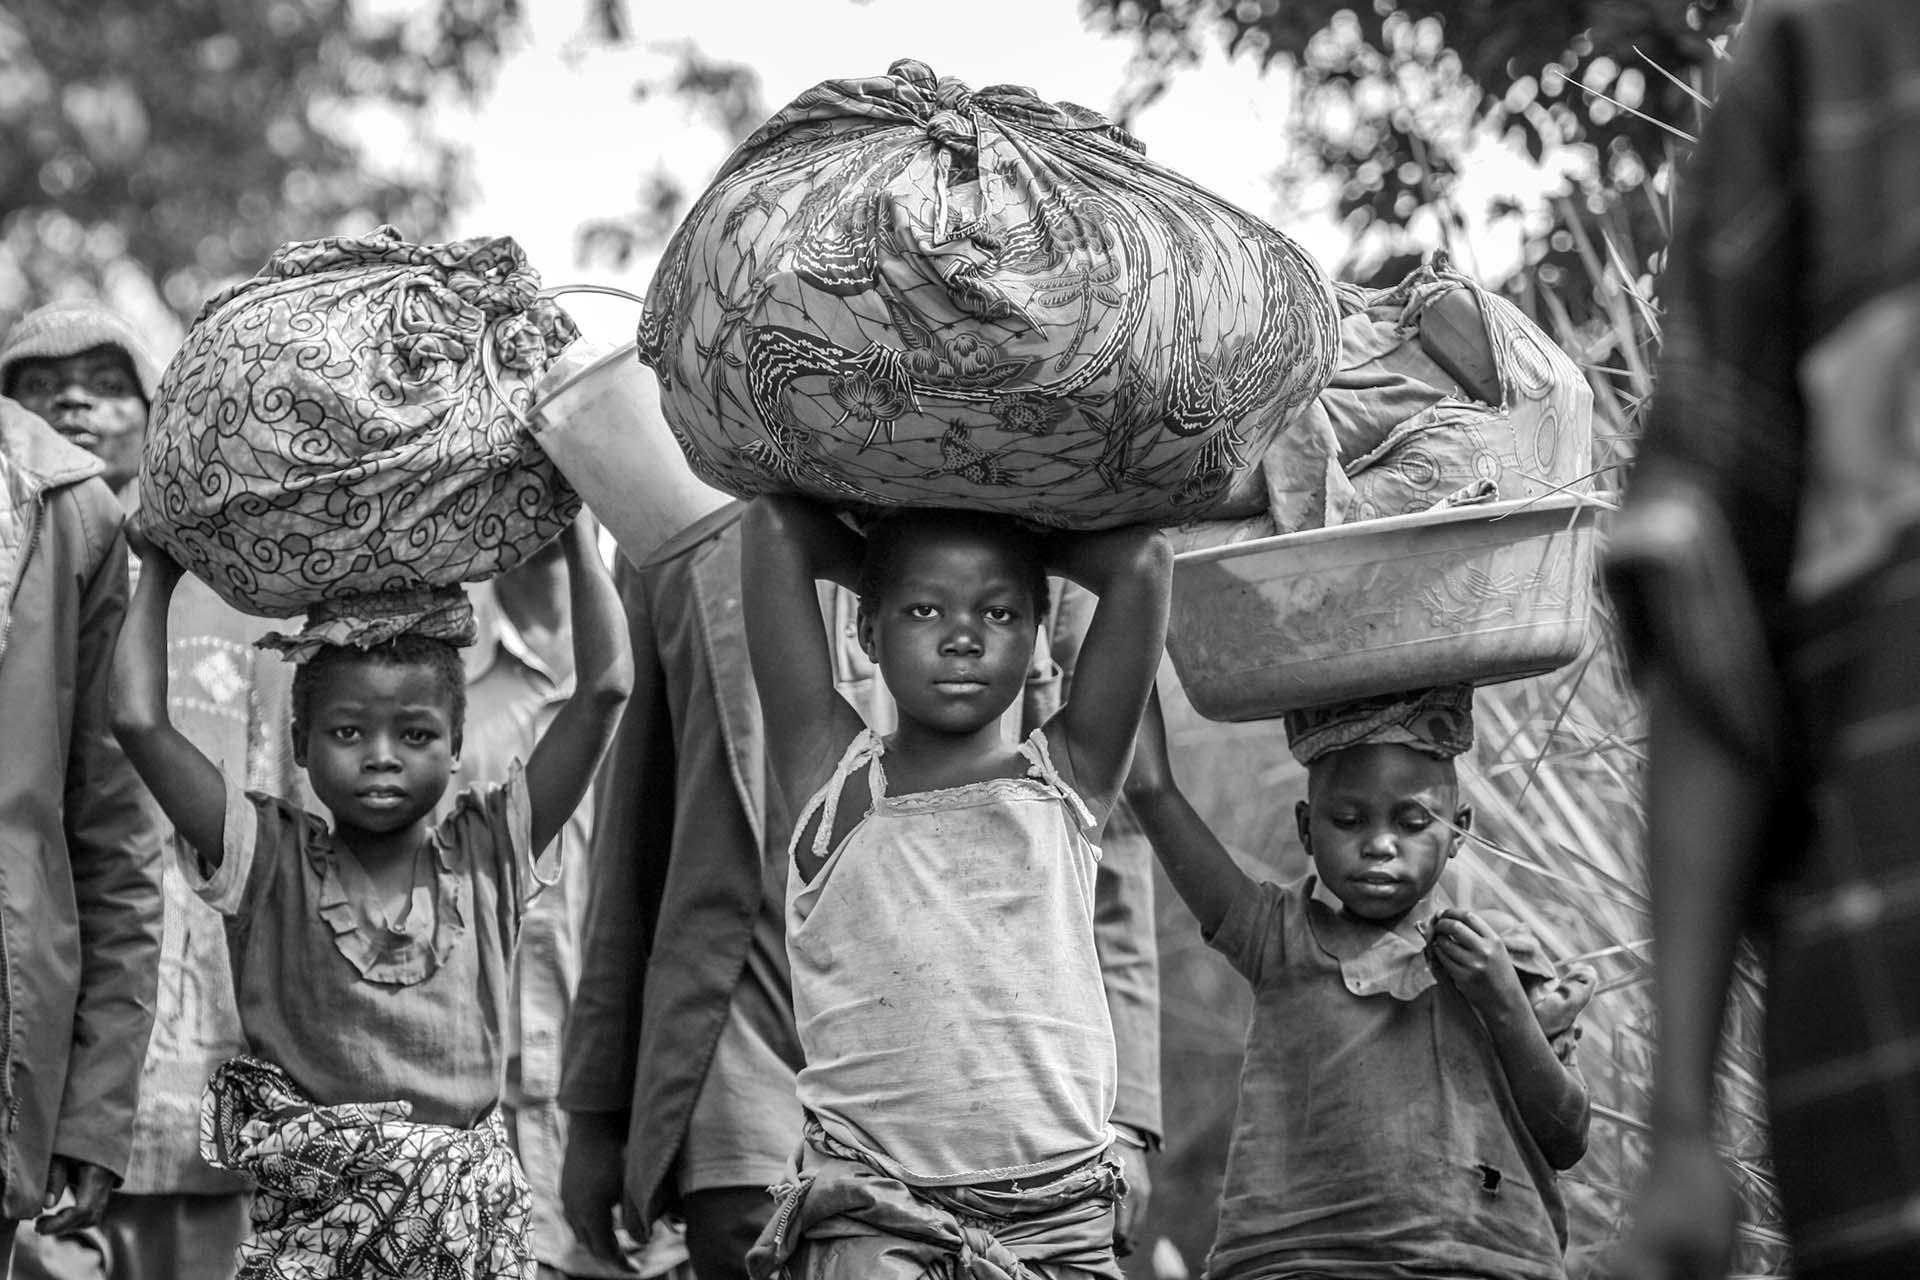 With all their worldly goods, Congolese, women and children, make a long journey to find a safe haven near the village of Gety in Ituri region.